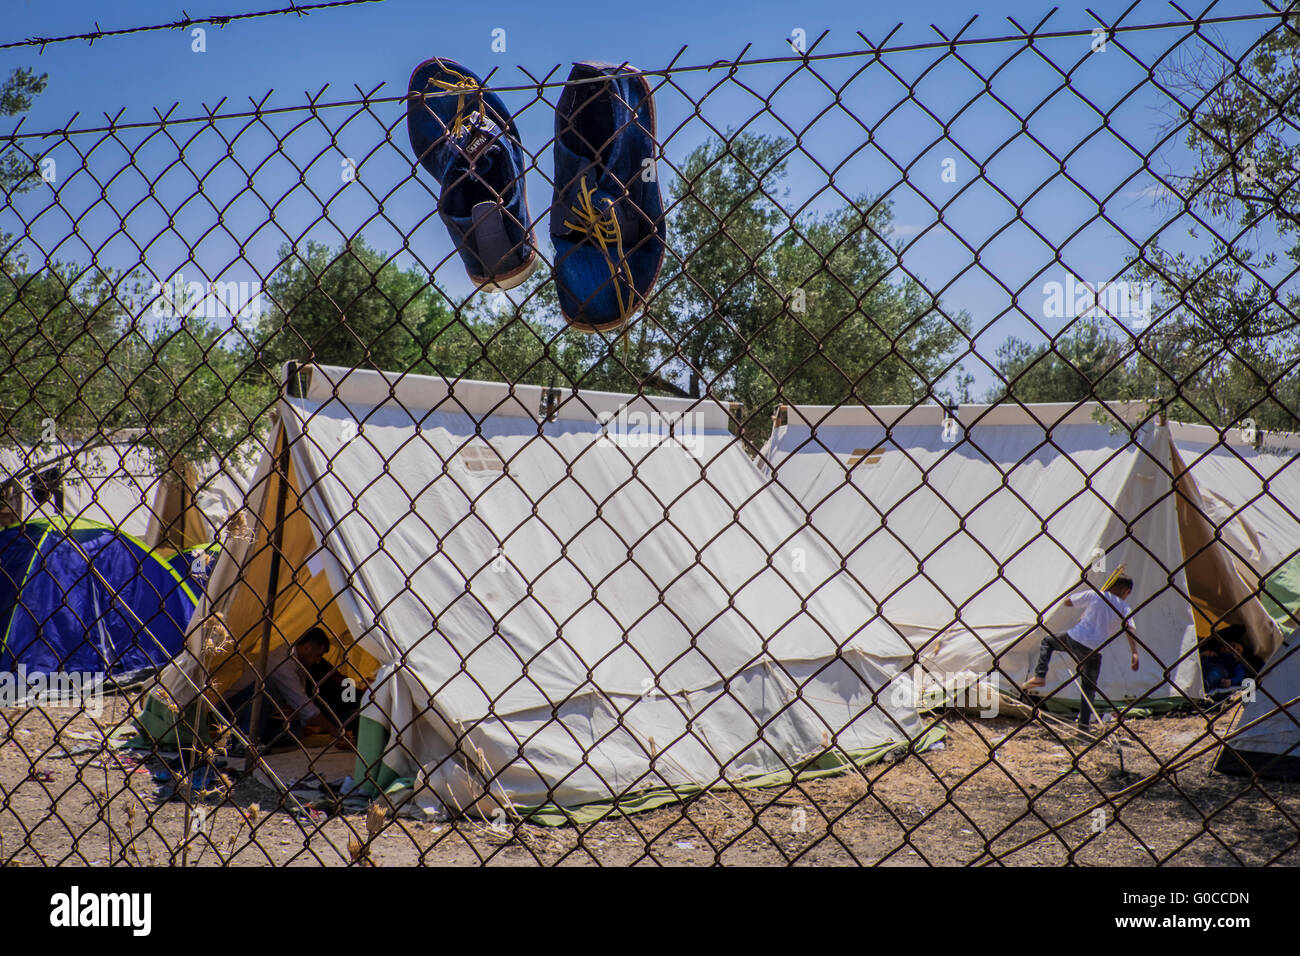 Refugee camp on the island of Lesvos with clothes drying and tents - Stock Image